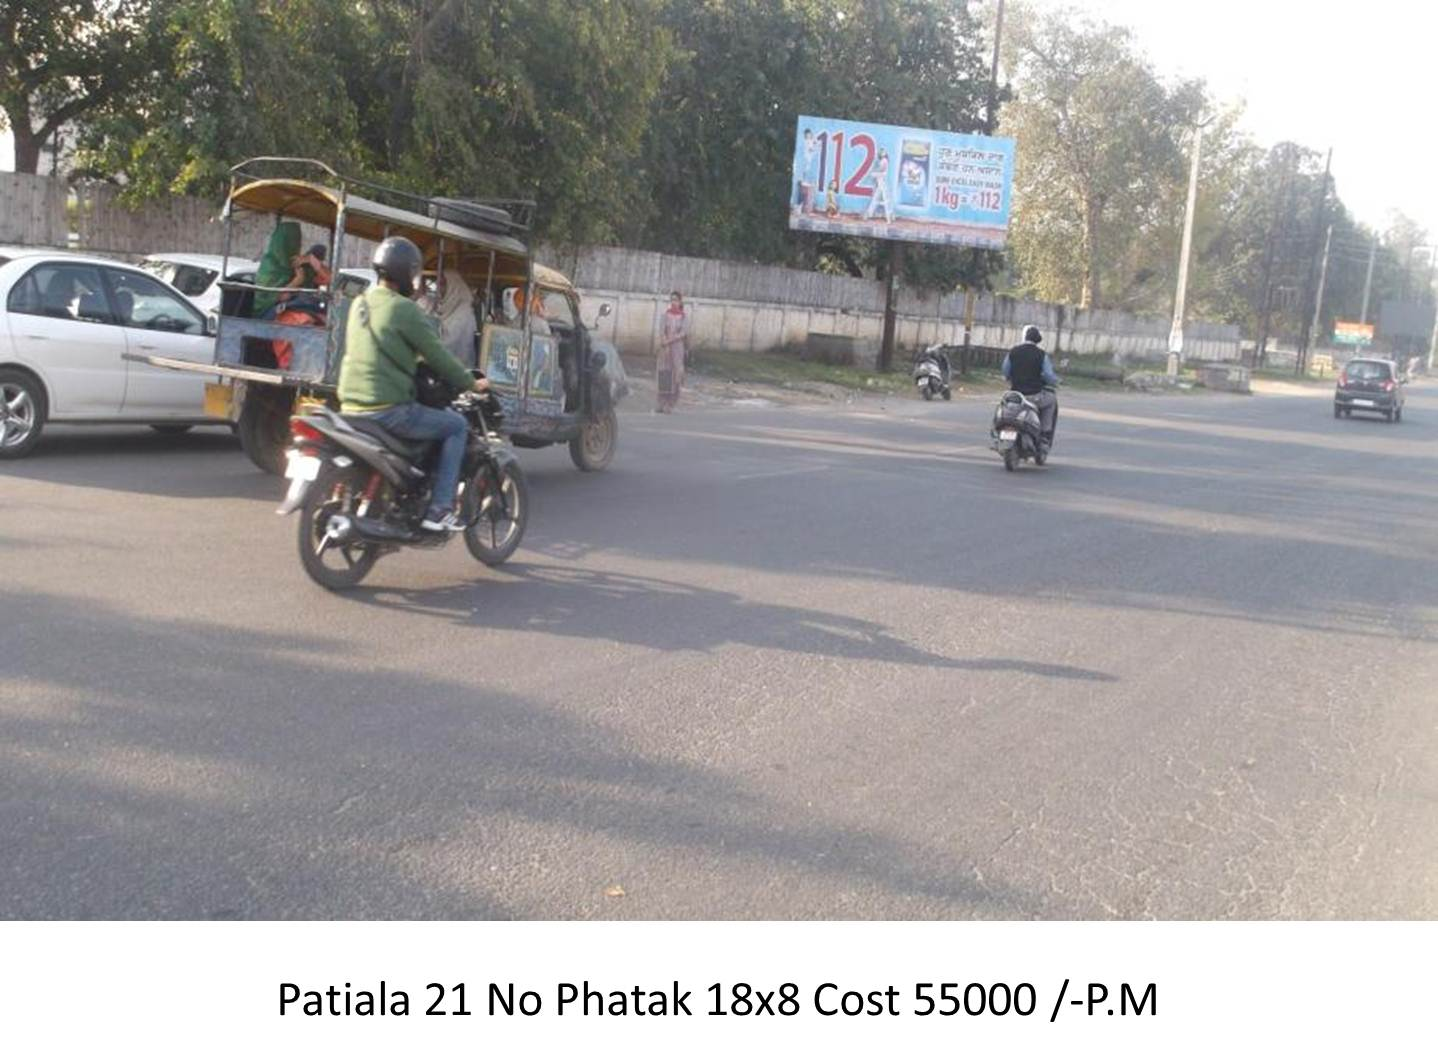 21 No. Phatak, Patiala